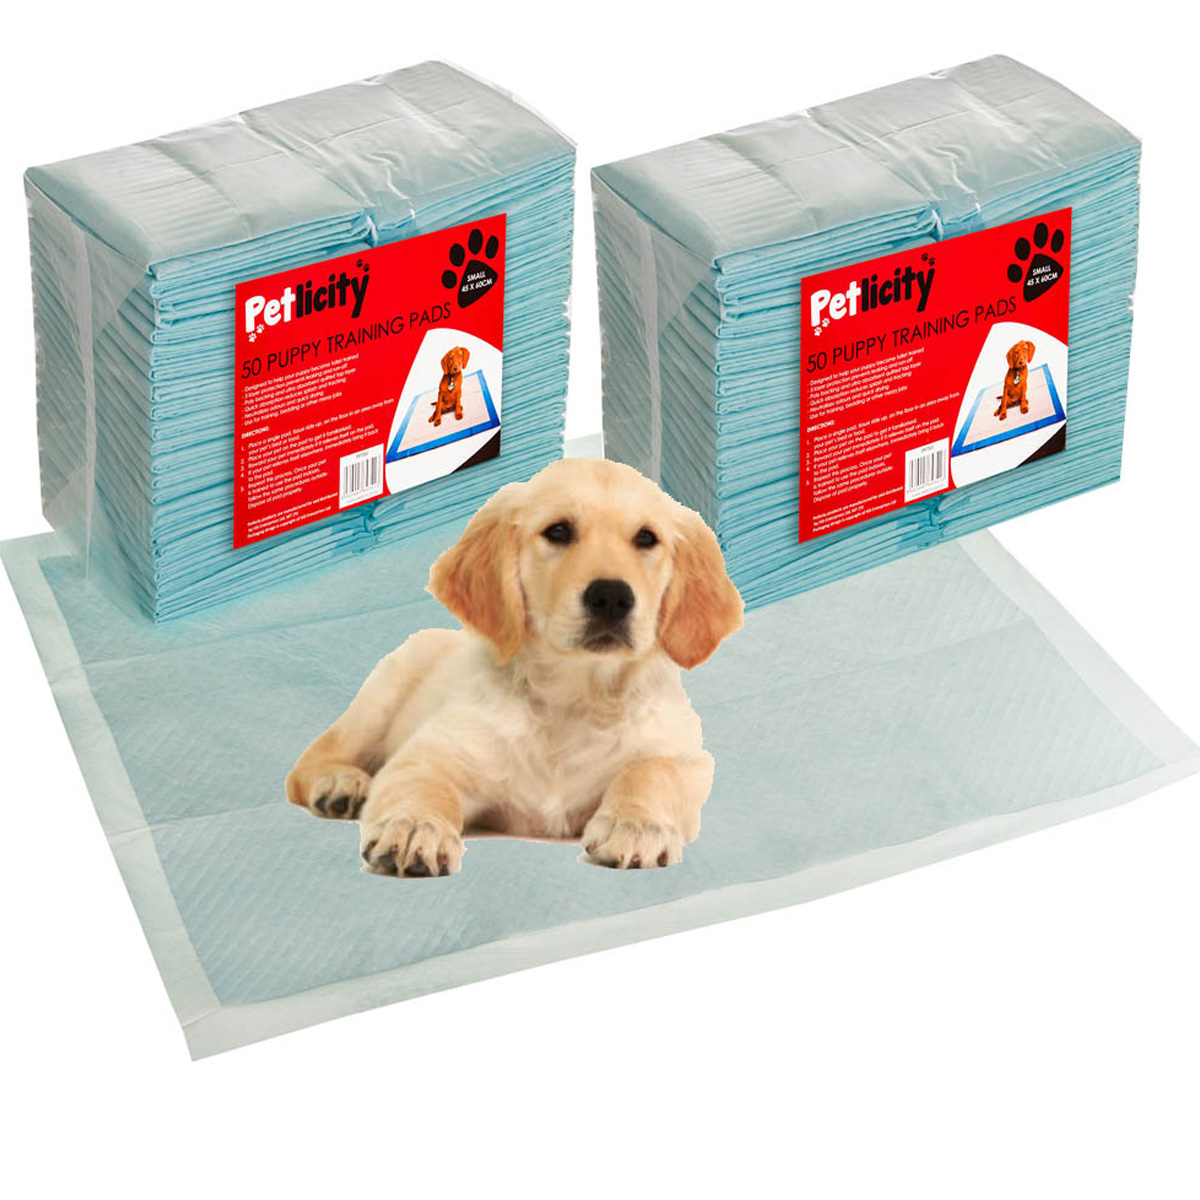 50 150 X Large Puppy Trainer Training Pads Toilet Pee Wee